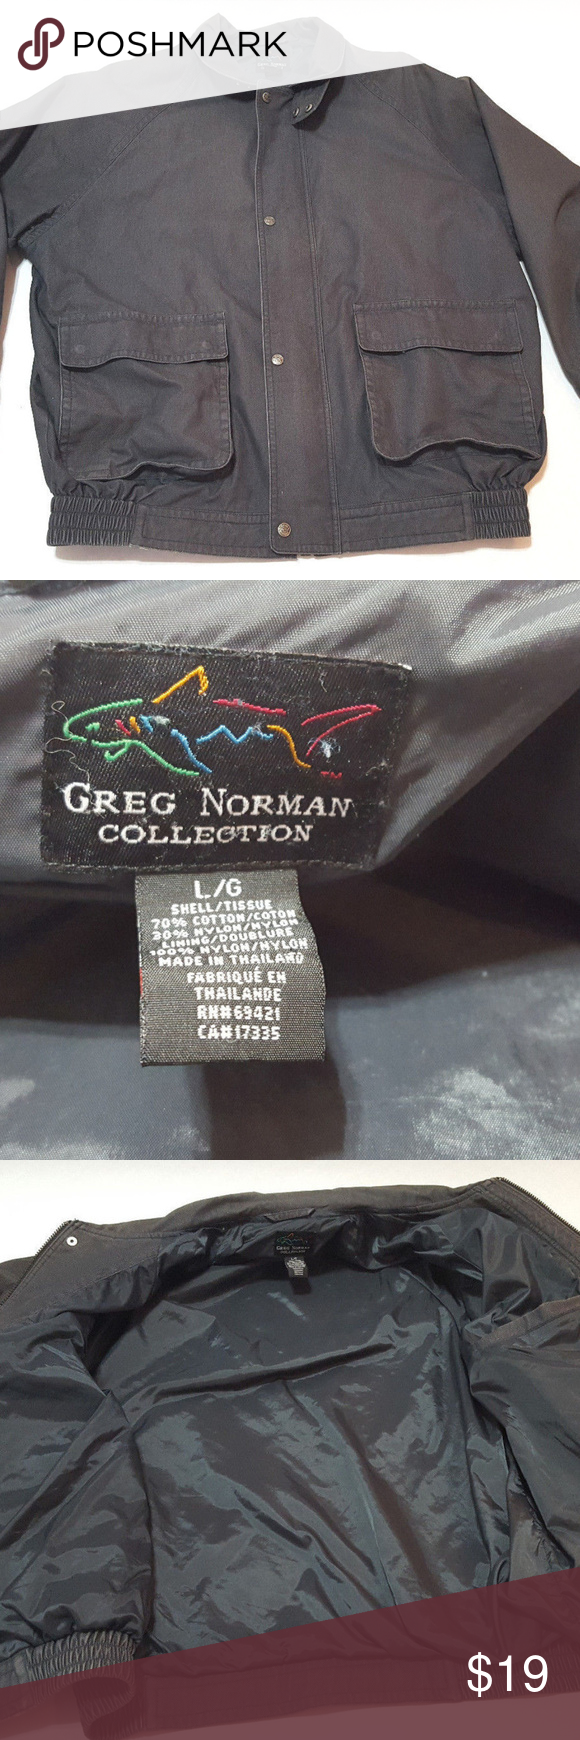 40 Off Greg Norman Collection Jacket Jackets Golf Jackets Greg Norman